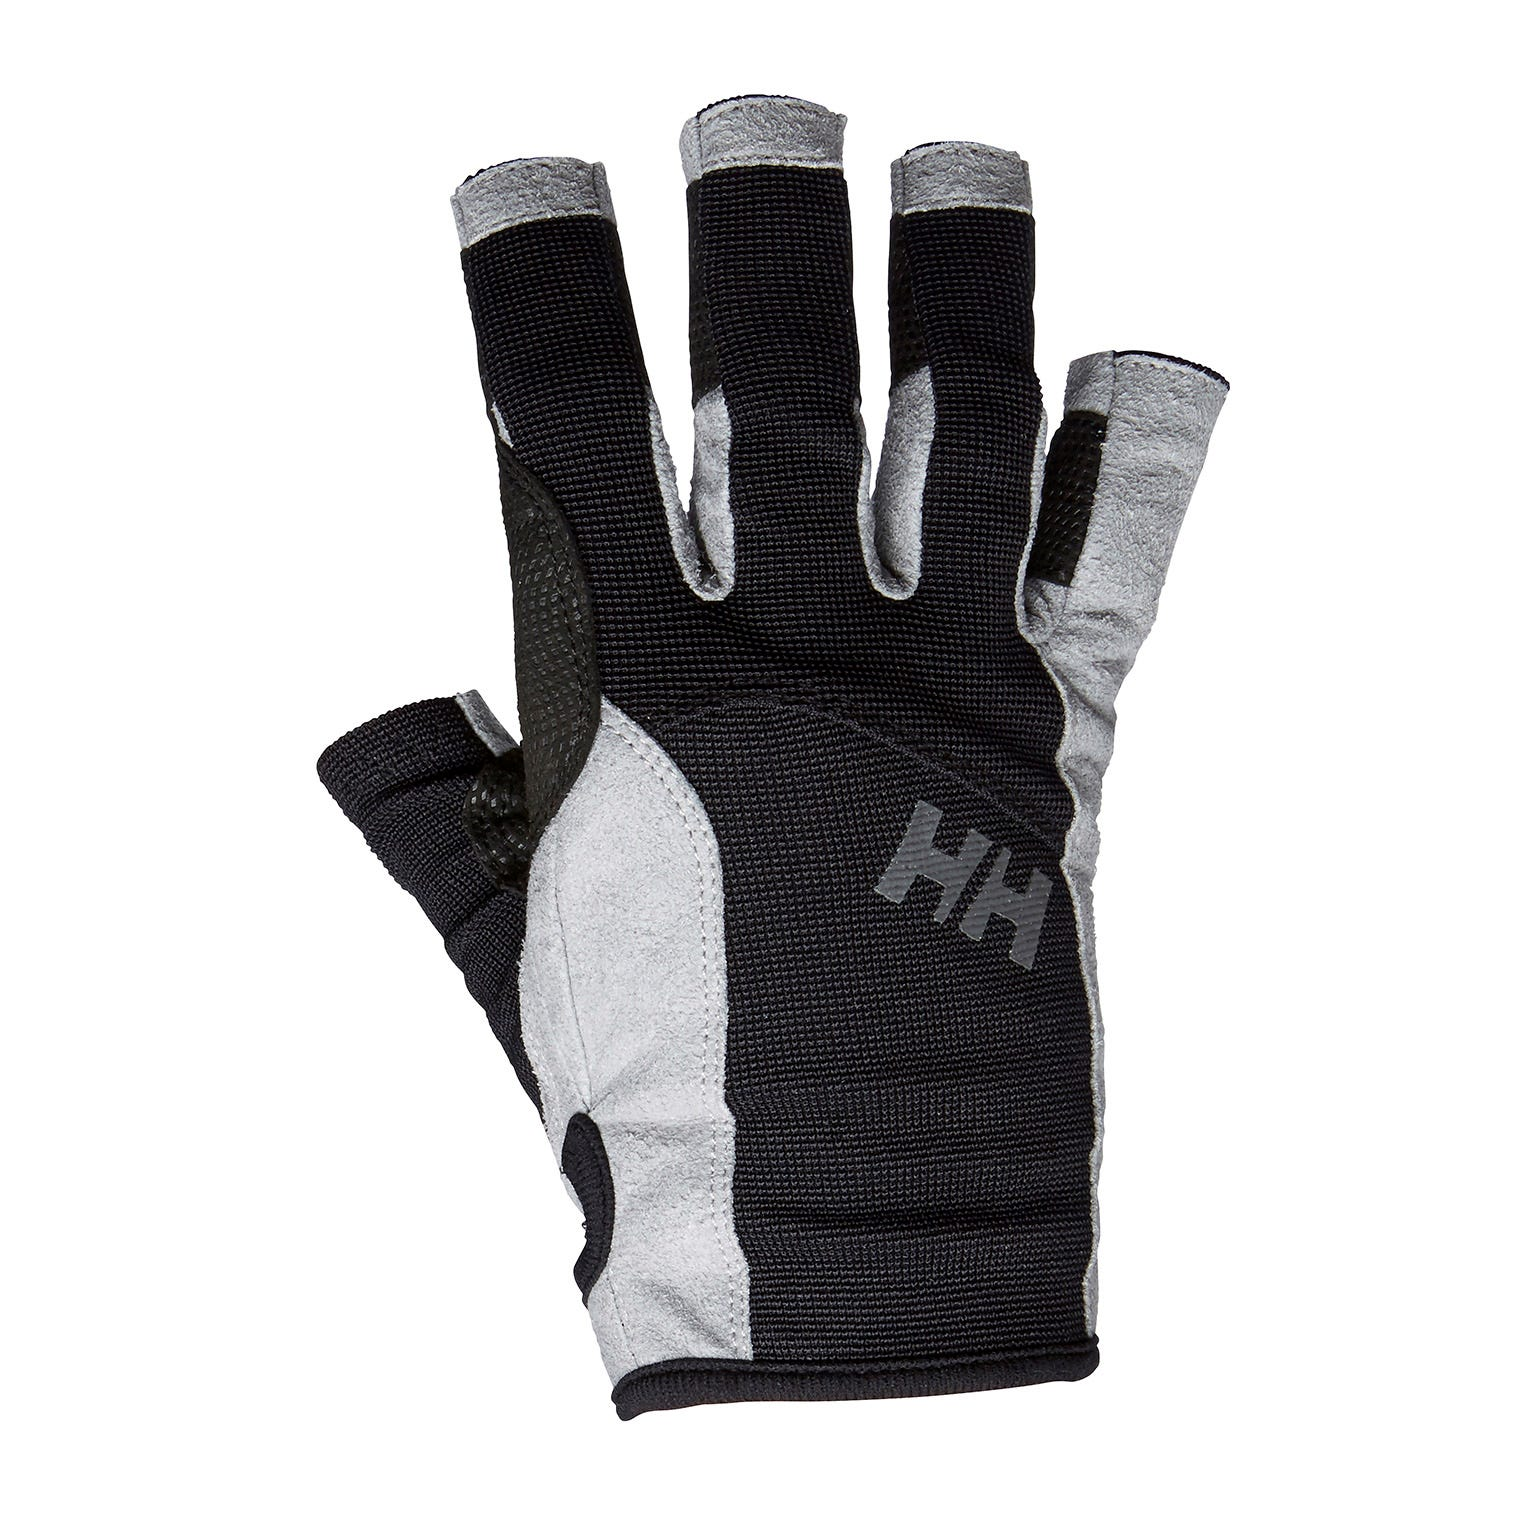 Helly Hansen Sailing Glove Short Black XL